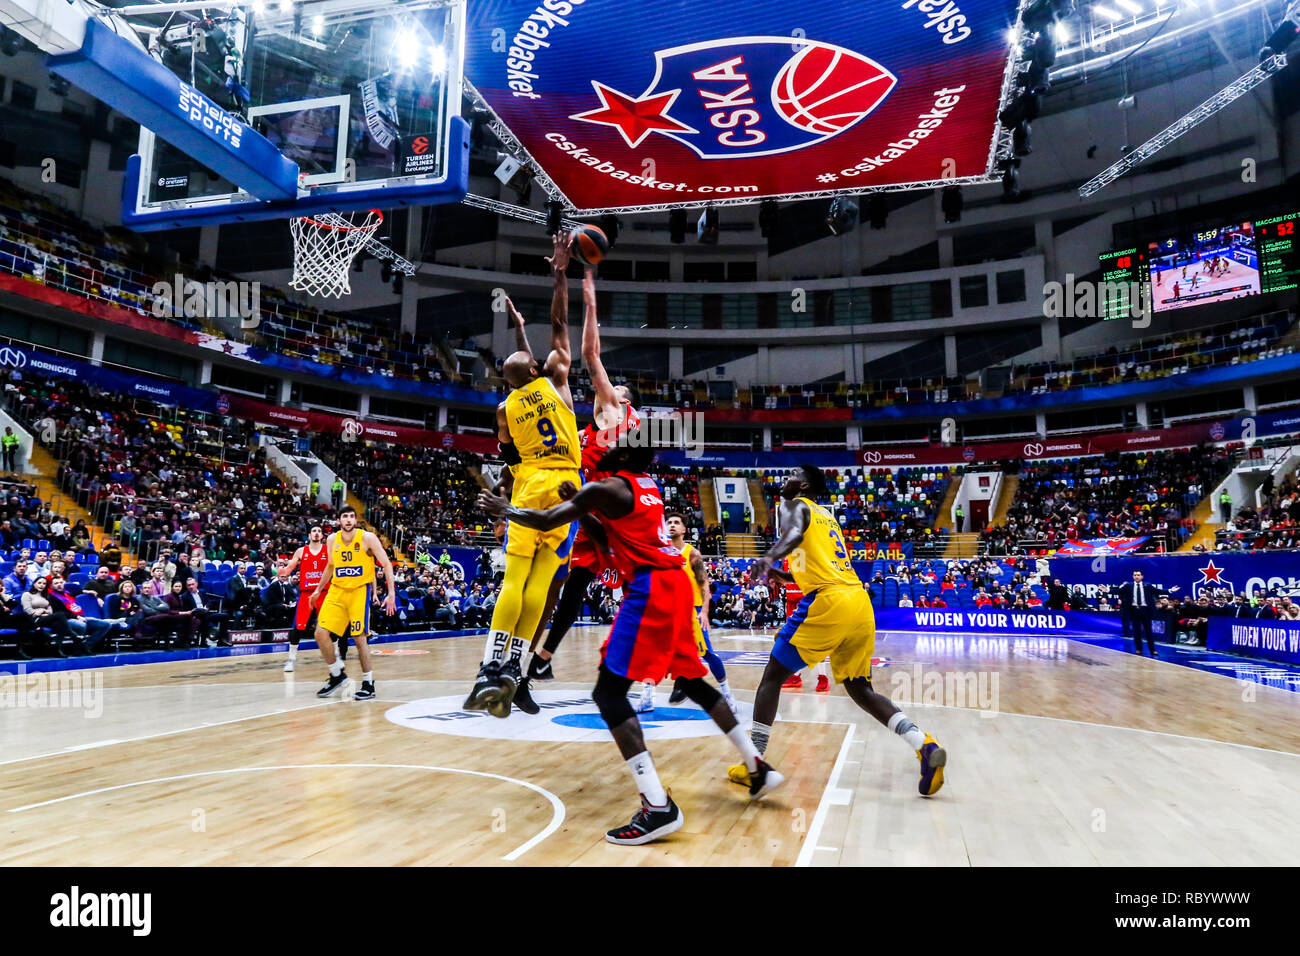 Alex Tyus, #9 of Maccabi Tel Aviv, seen in action against CSKA Moscow in Round 18 of the Turkish Airlines Euroleague game of the 2018-2019 season. Maccabi Tel Aviv beat CSKA Moscow, 93-76. - Stock Image